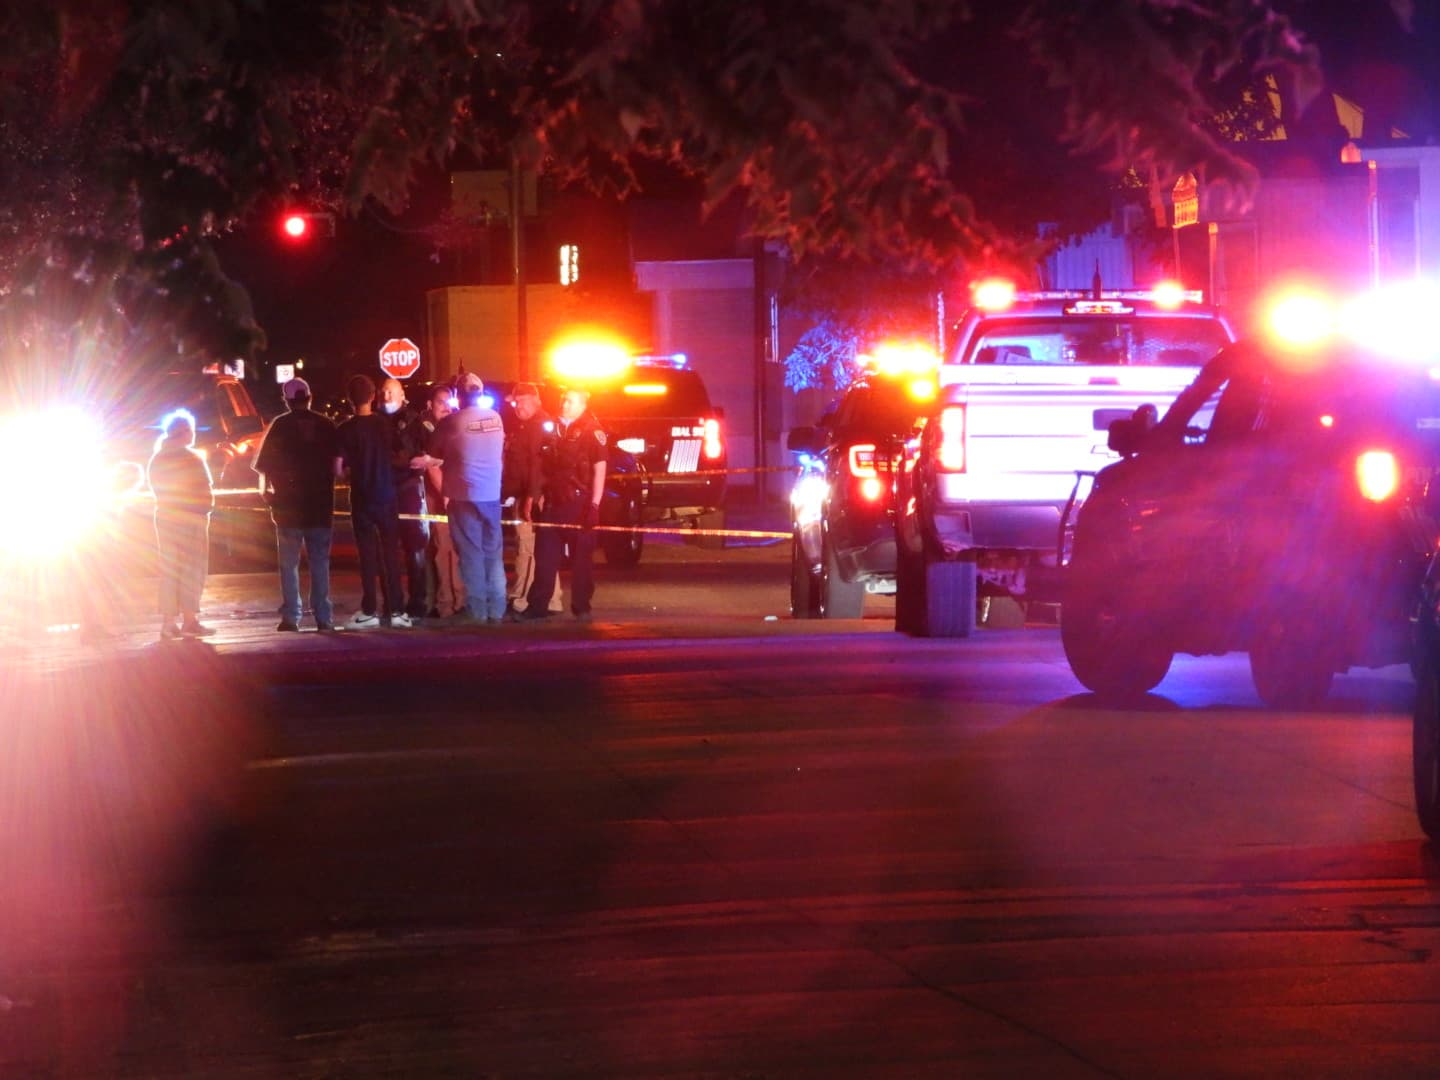 One Person Transported to the Hospital After South Sioux City Shooting